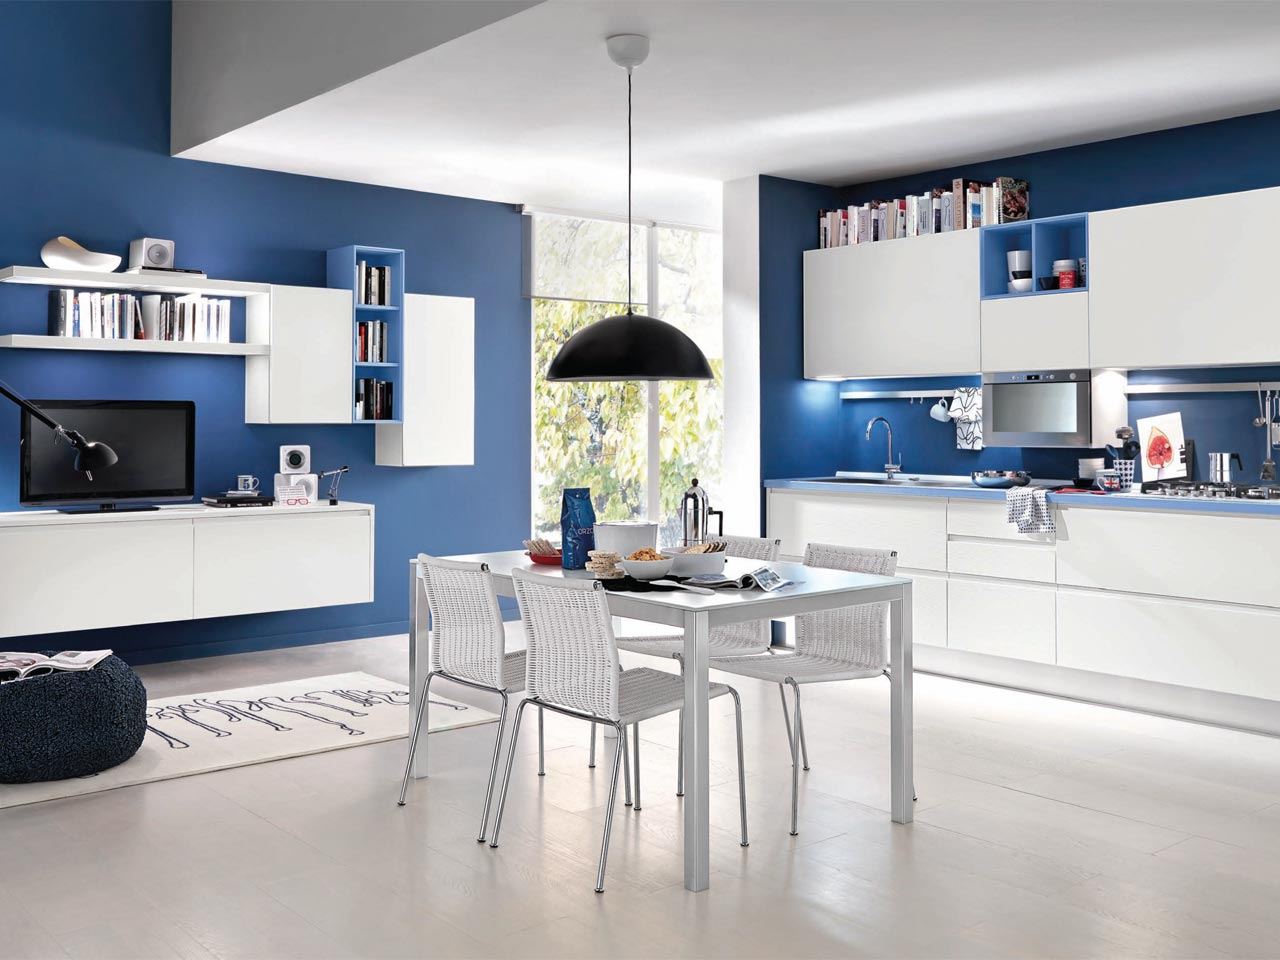 linda kitchen without handles by cucine lube